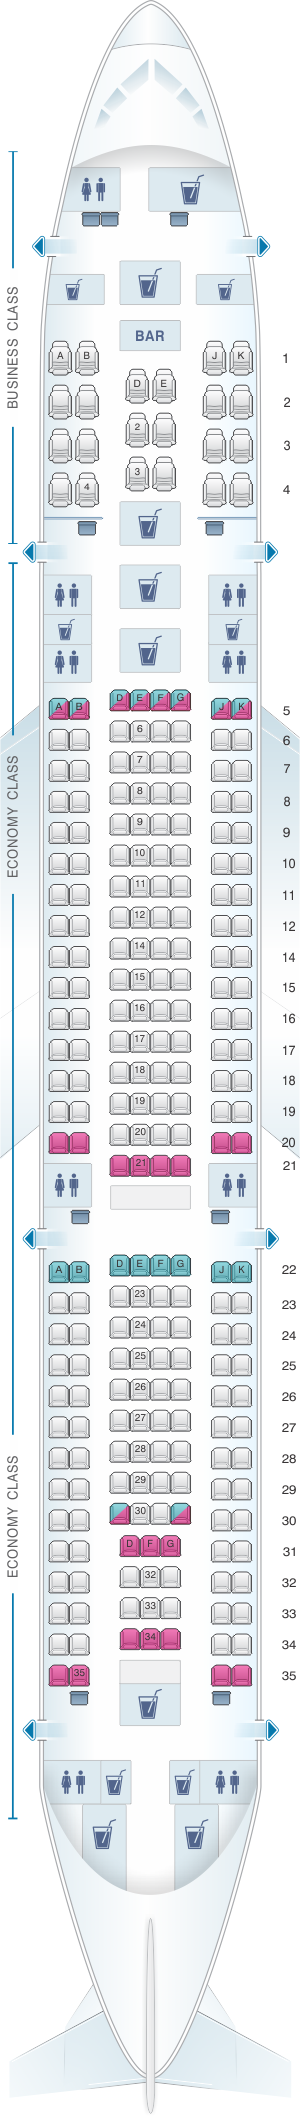 Seat map for Turkish Airlines Airbus A330 200